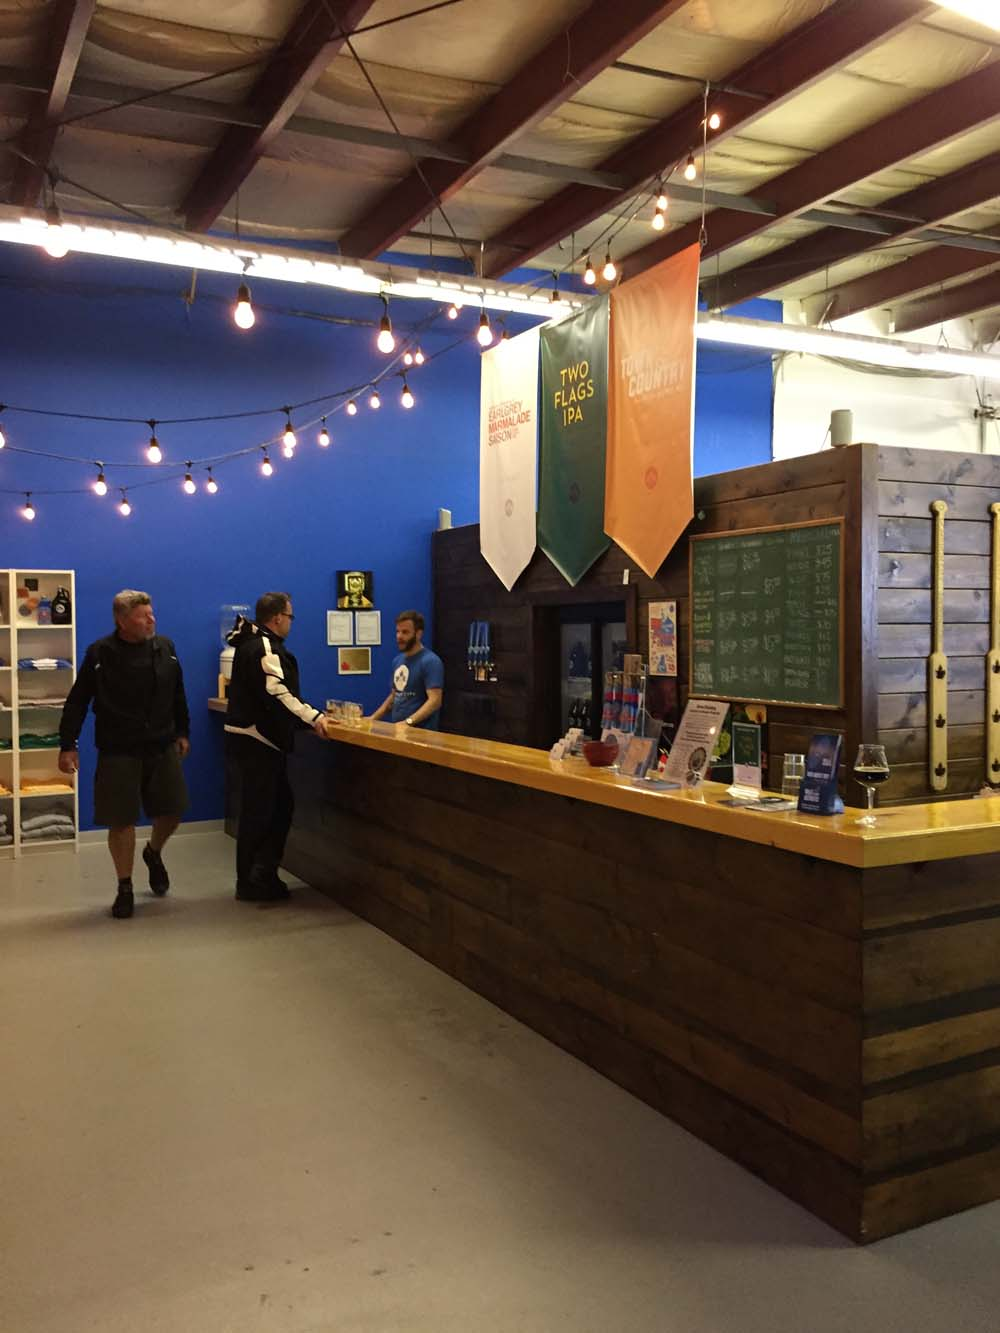 ... and inside the Dominion City Brewing Co.